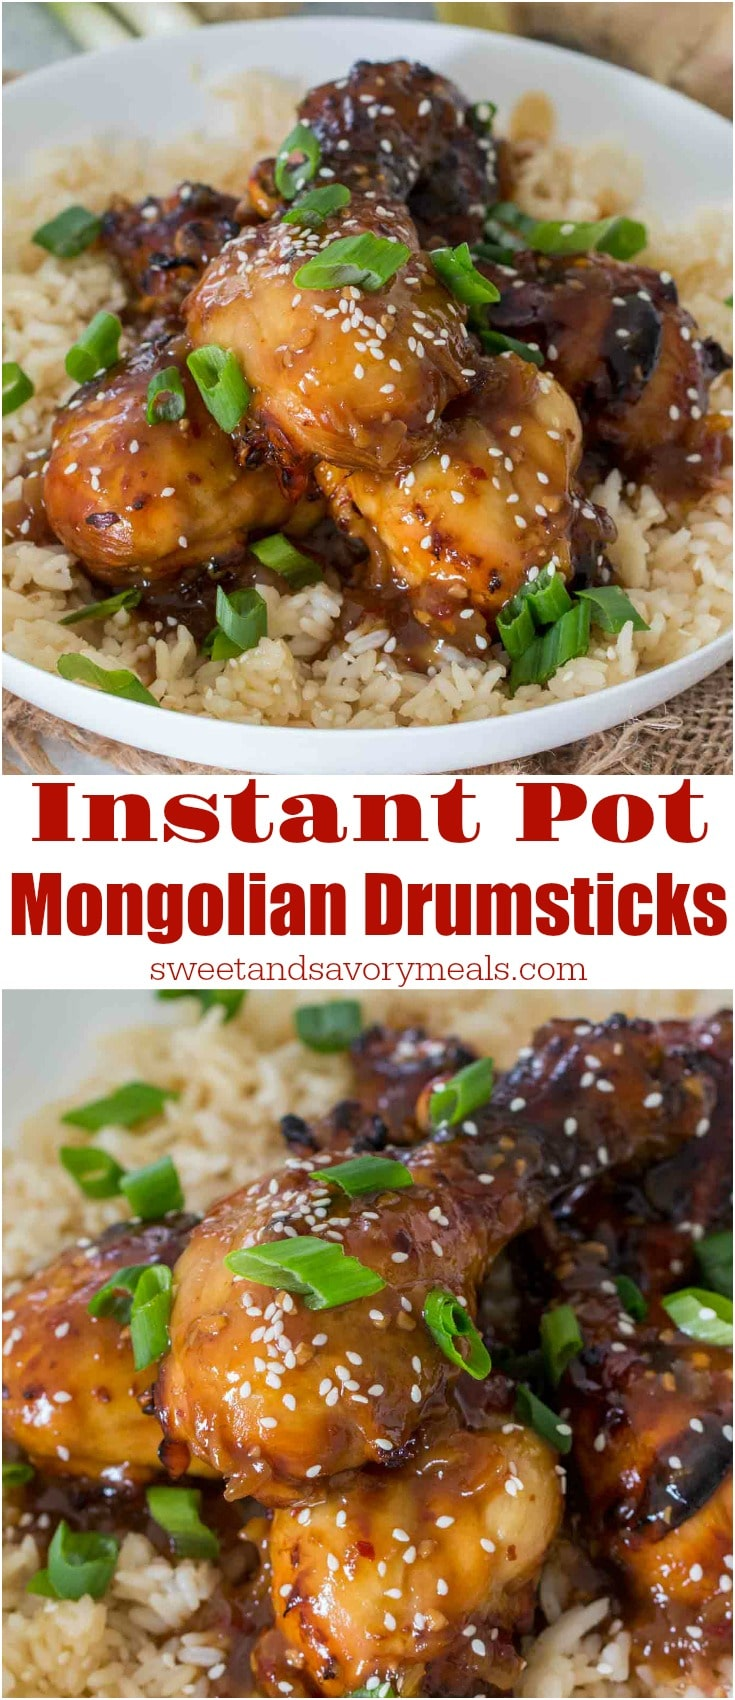 Instant Pot Mongolian Drumsticks are the perfect combination of sweet and savory. The chicken drumsticks are incredibly tender on the inside and crispy on the outside.